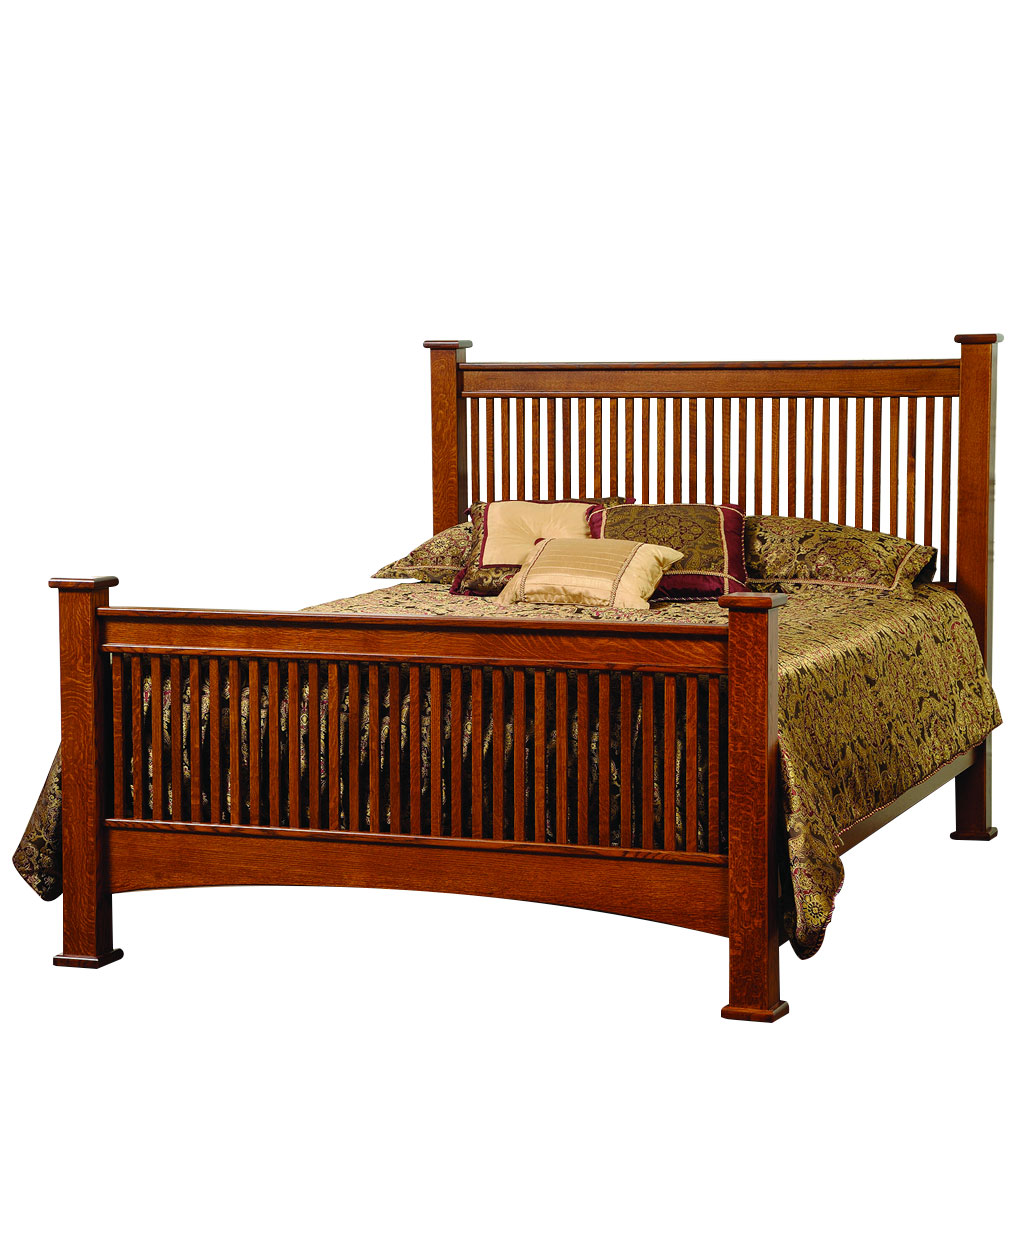 Troyer ridge mission bed amish direct furniture for Queen mission style bedroom set